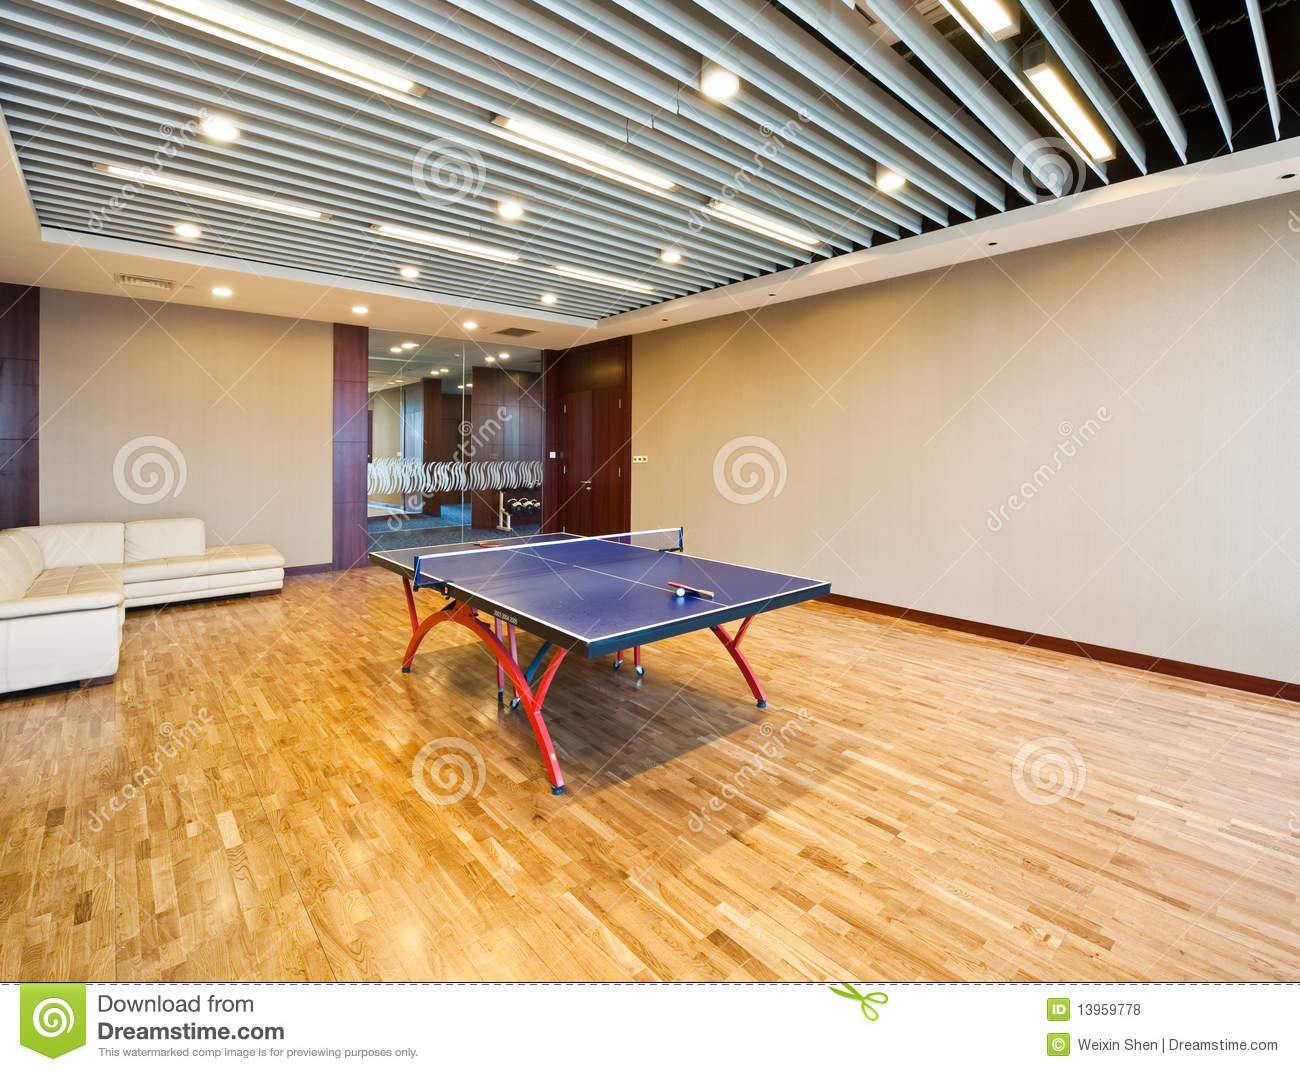 Playing Room For Table Tennis Stock Photo Image of pingpong ping